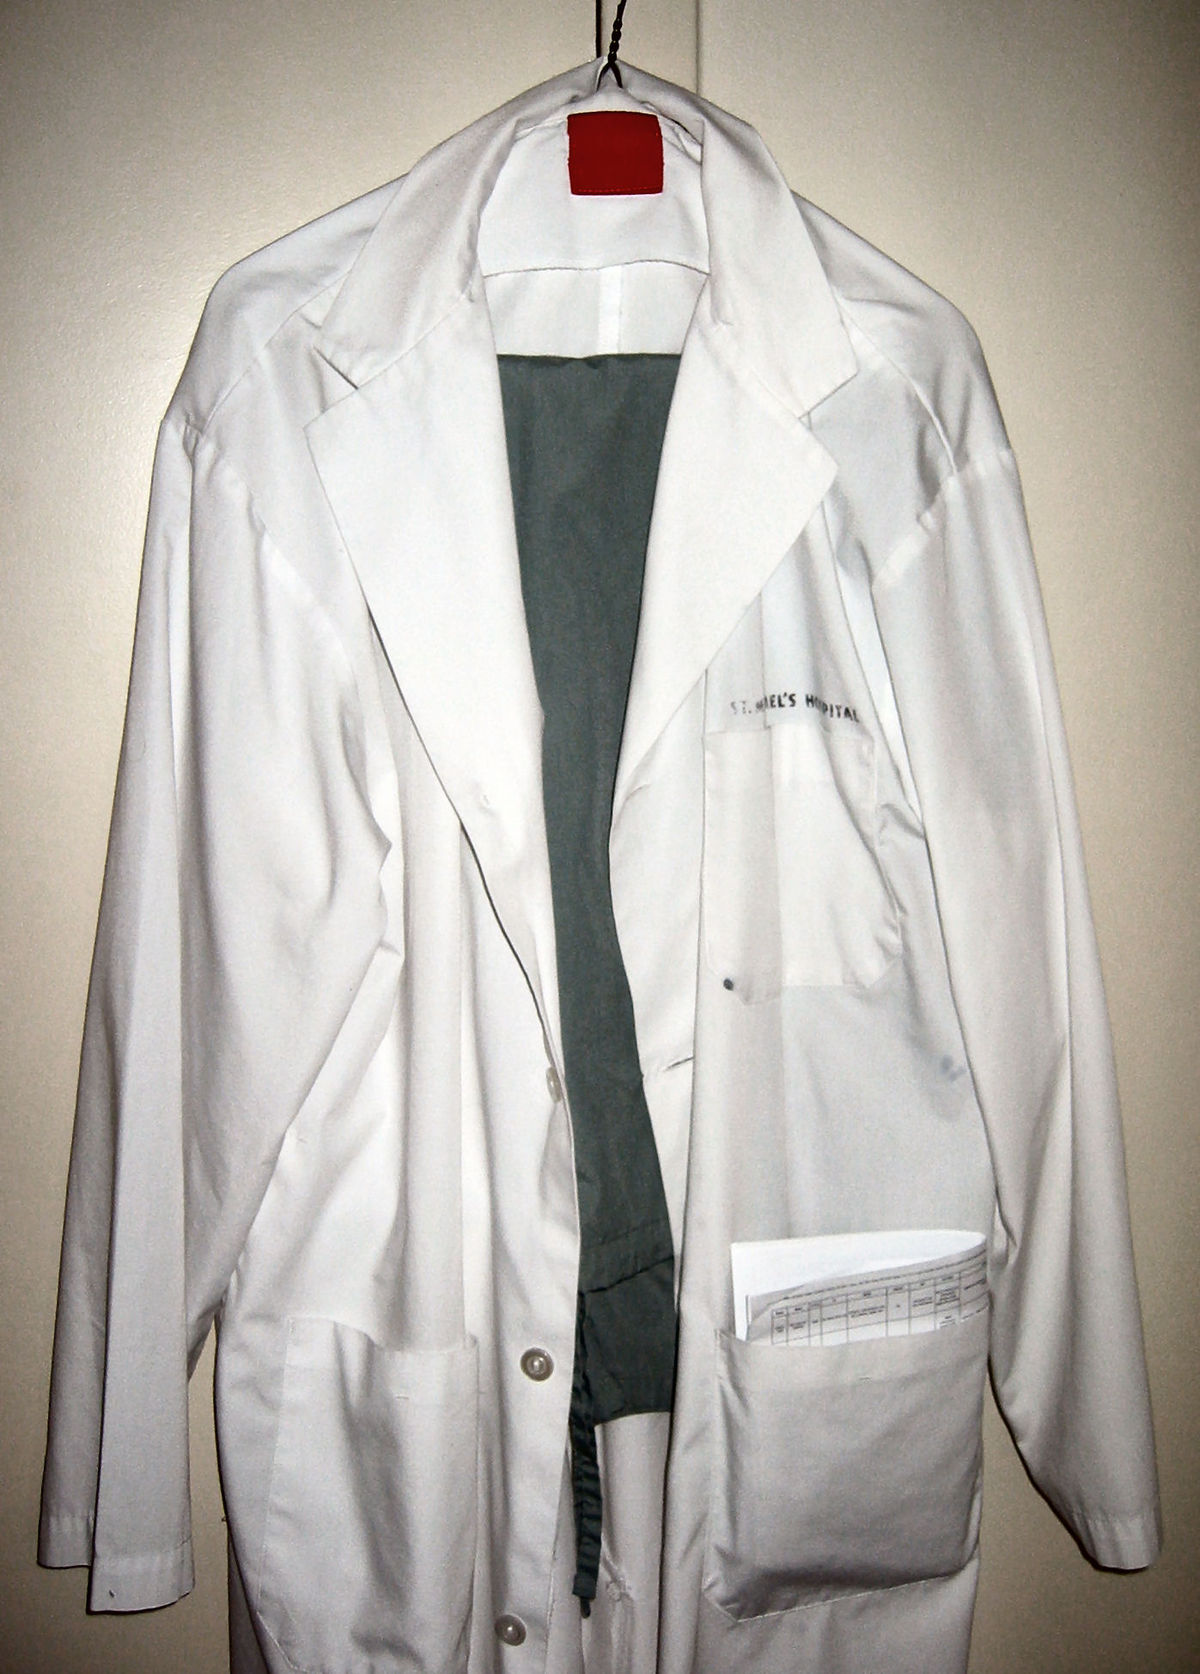 White coat - Wikipedia